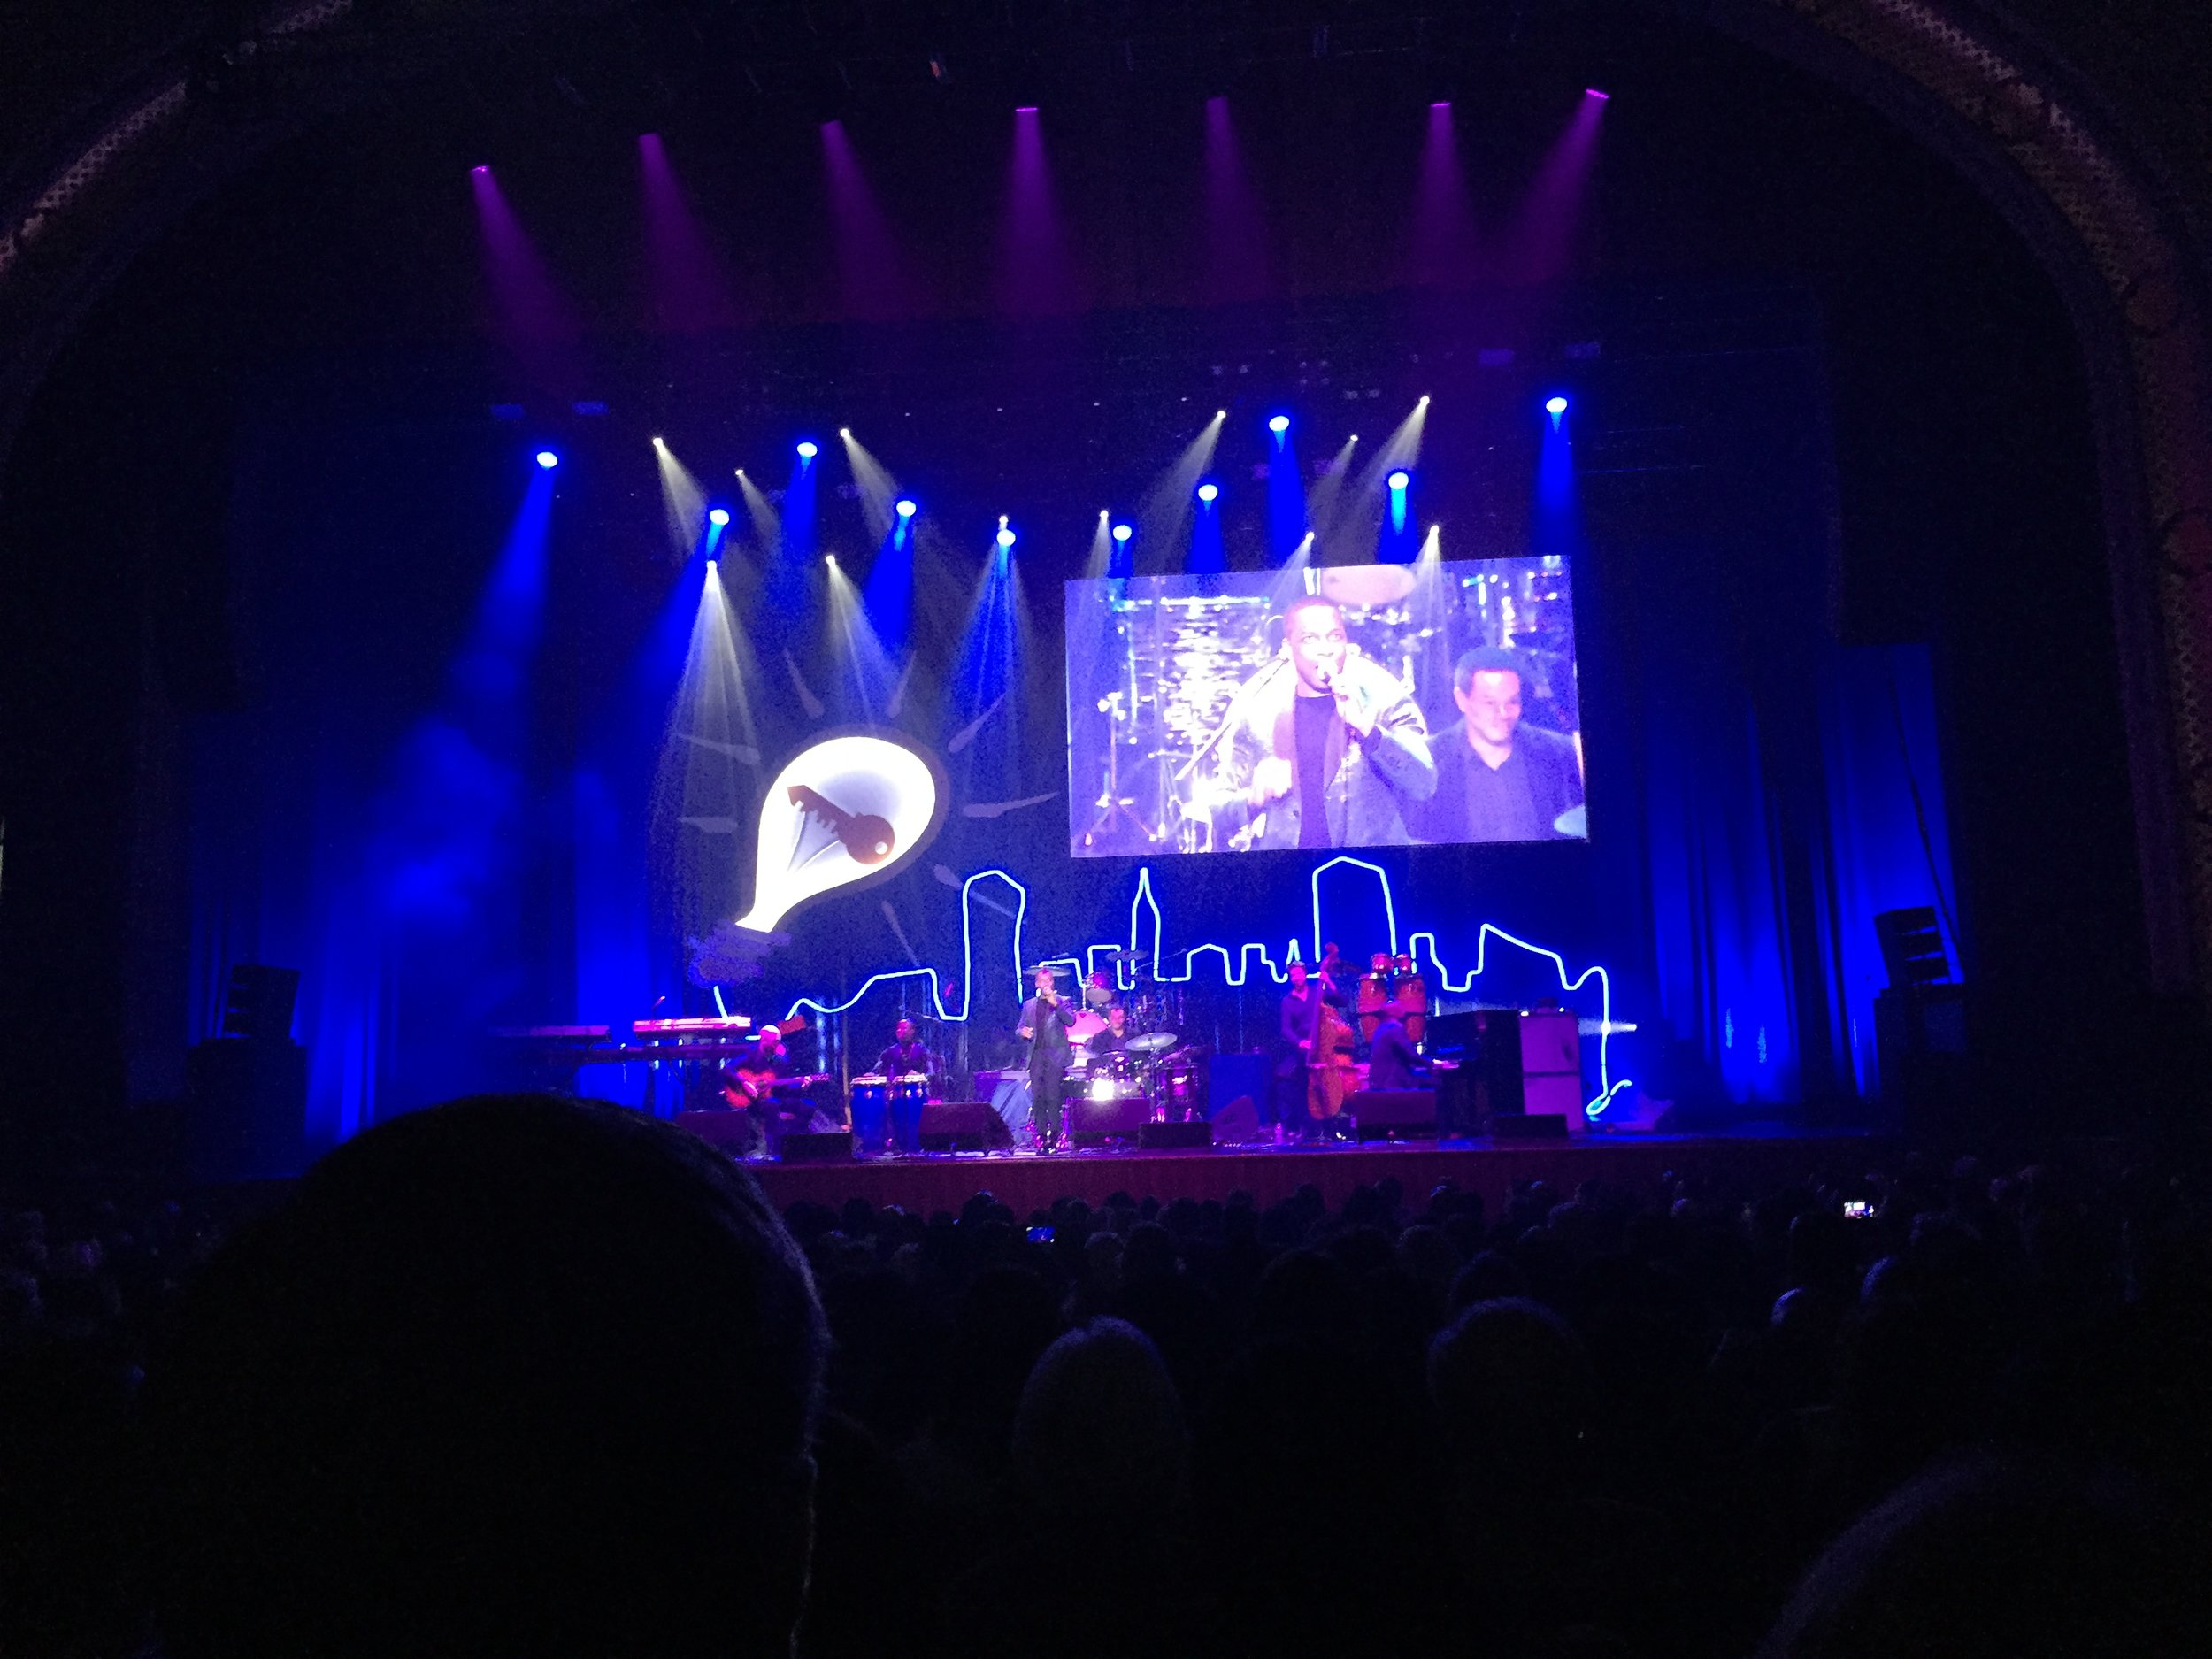 """""""An Evening of Unexpected Delights,"""" an annual fundraiser to benefit The Journey Home, featured musical guests """"The Roots"""" and Leslie Odom Jr. of """"Hamilton."""""""